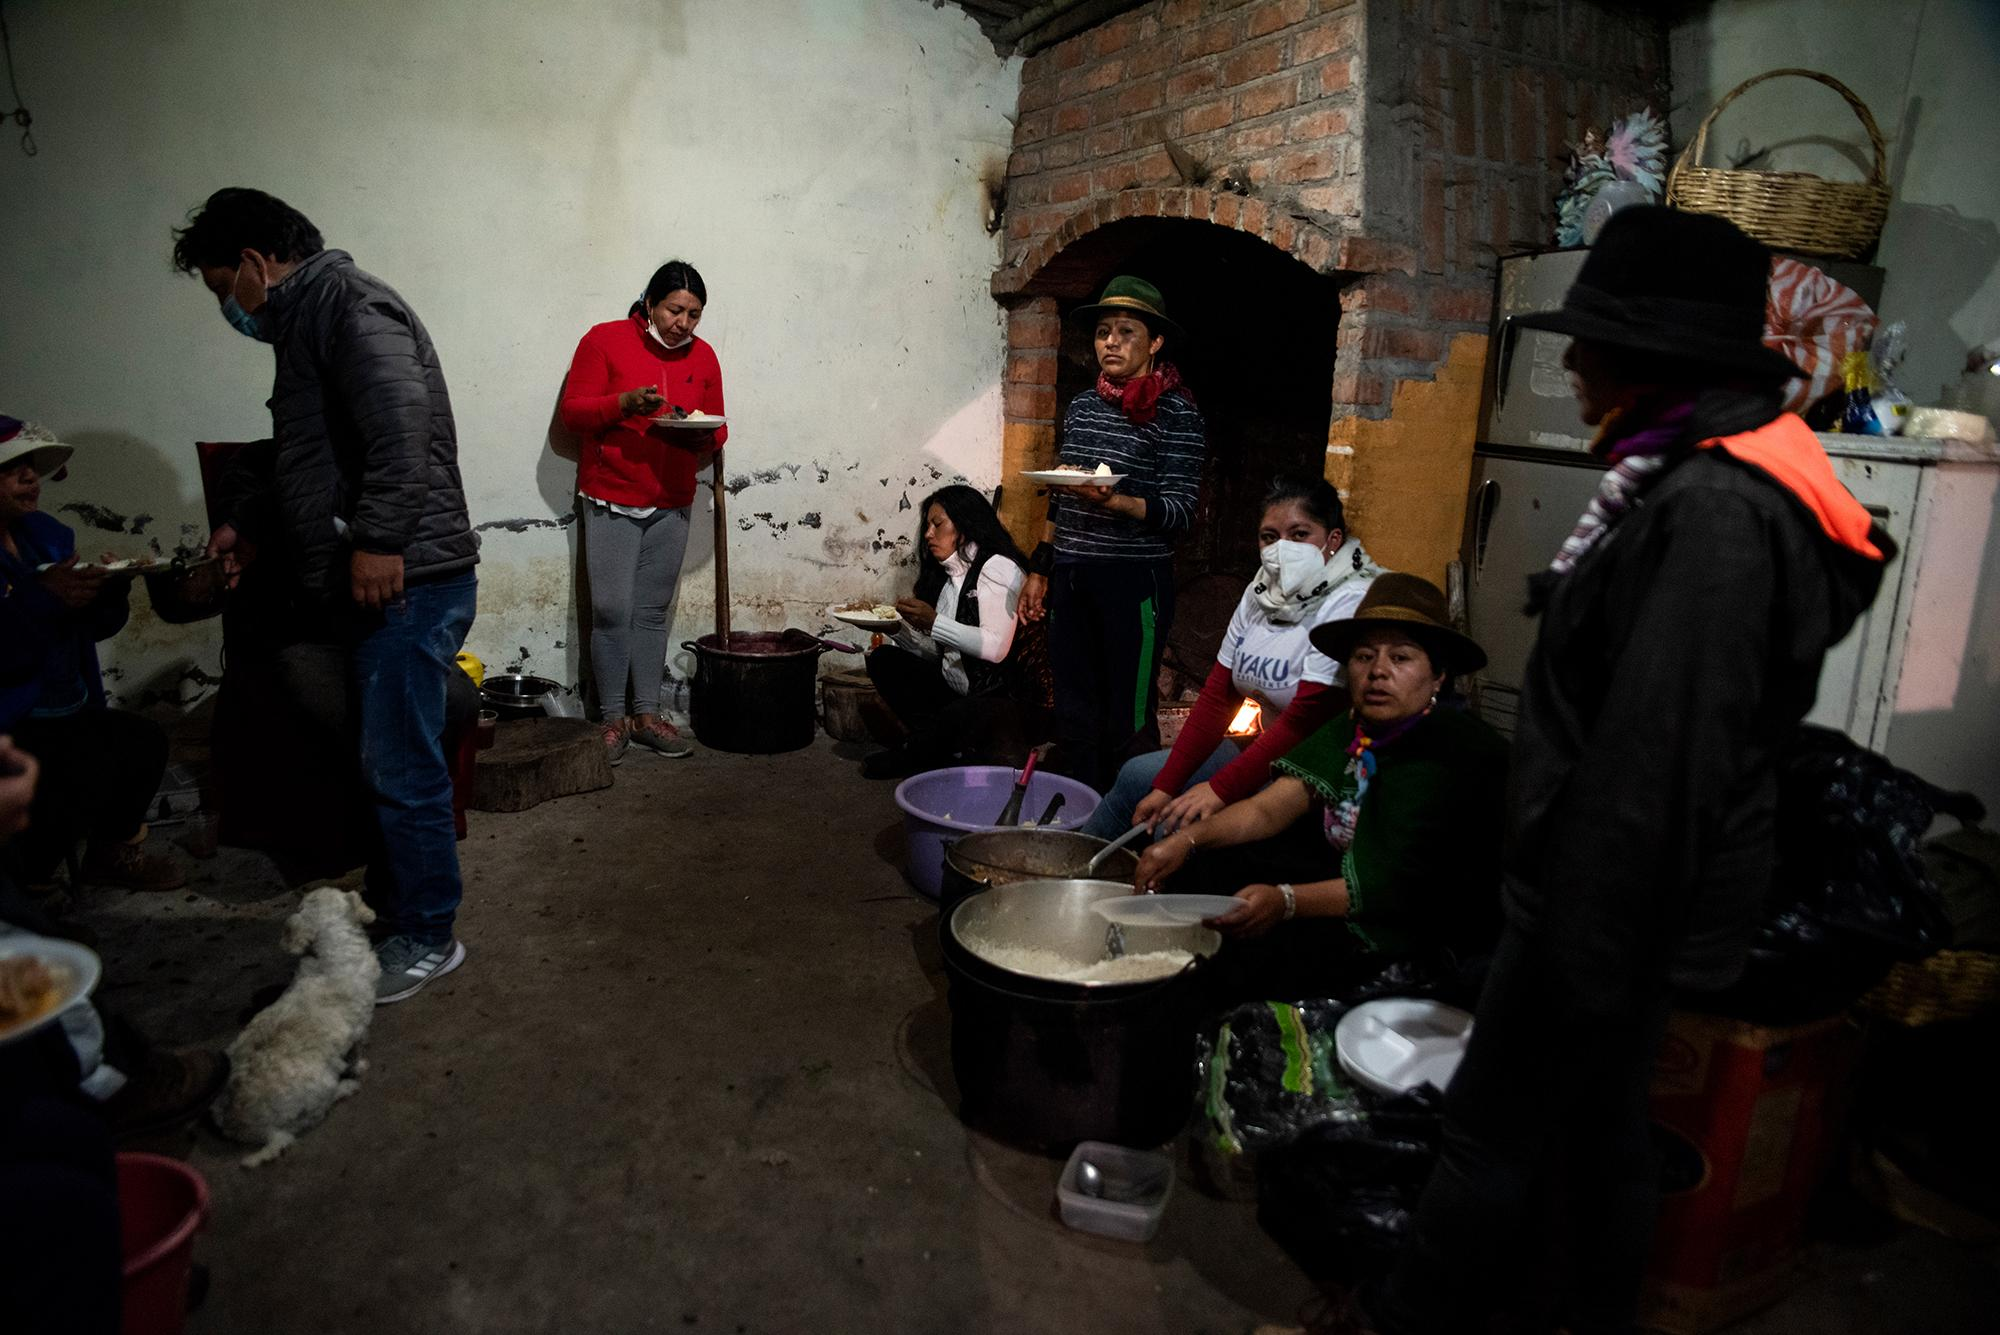 Indigenous women of Tungurahua serve dinner to the participants of the National March for Democracy on the night of February 21, 2021. Each community receives the participants and provides them with food and lodging. Tungurahua, Ecuador. Johis Alarcón for The New York Times.